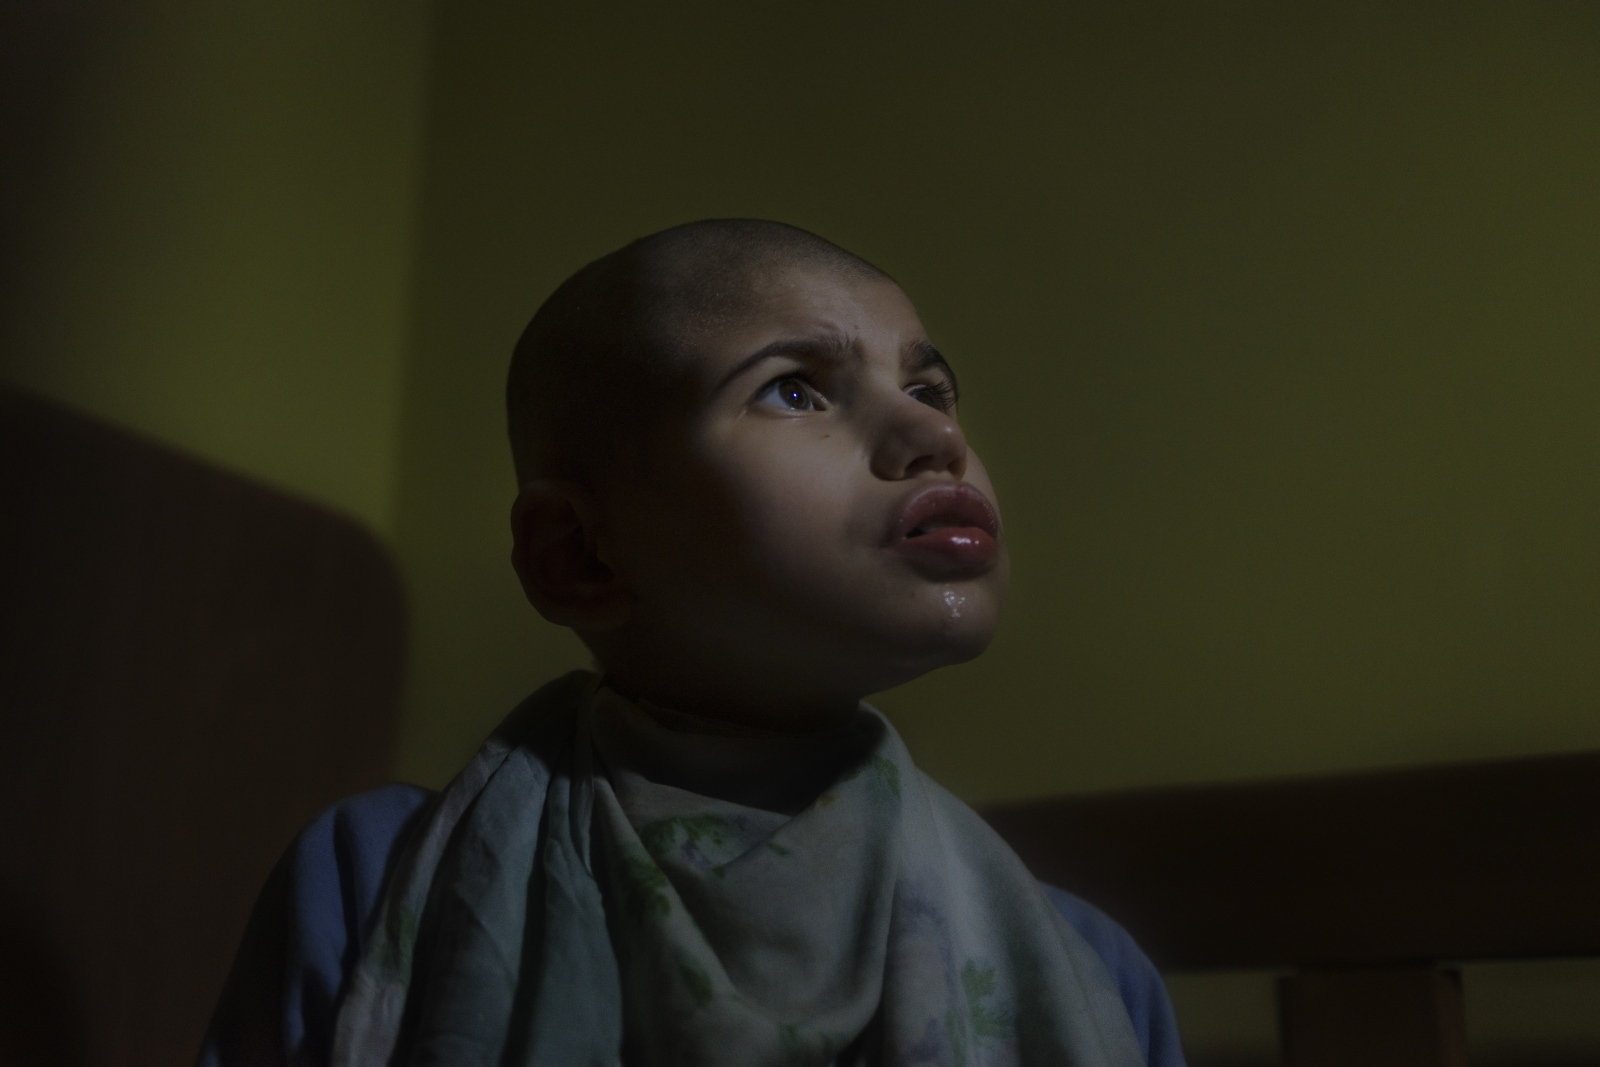 A child sits in bed wearing a homeade straightjacket to prevent self harm.